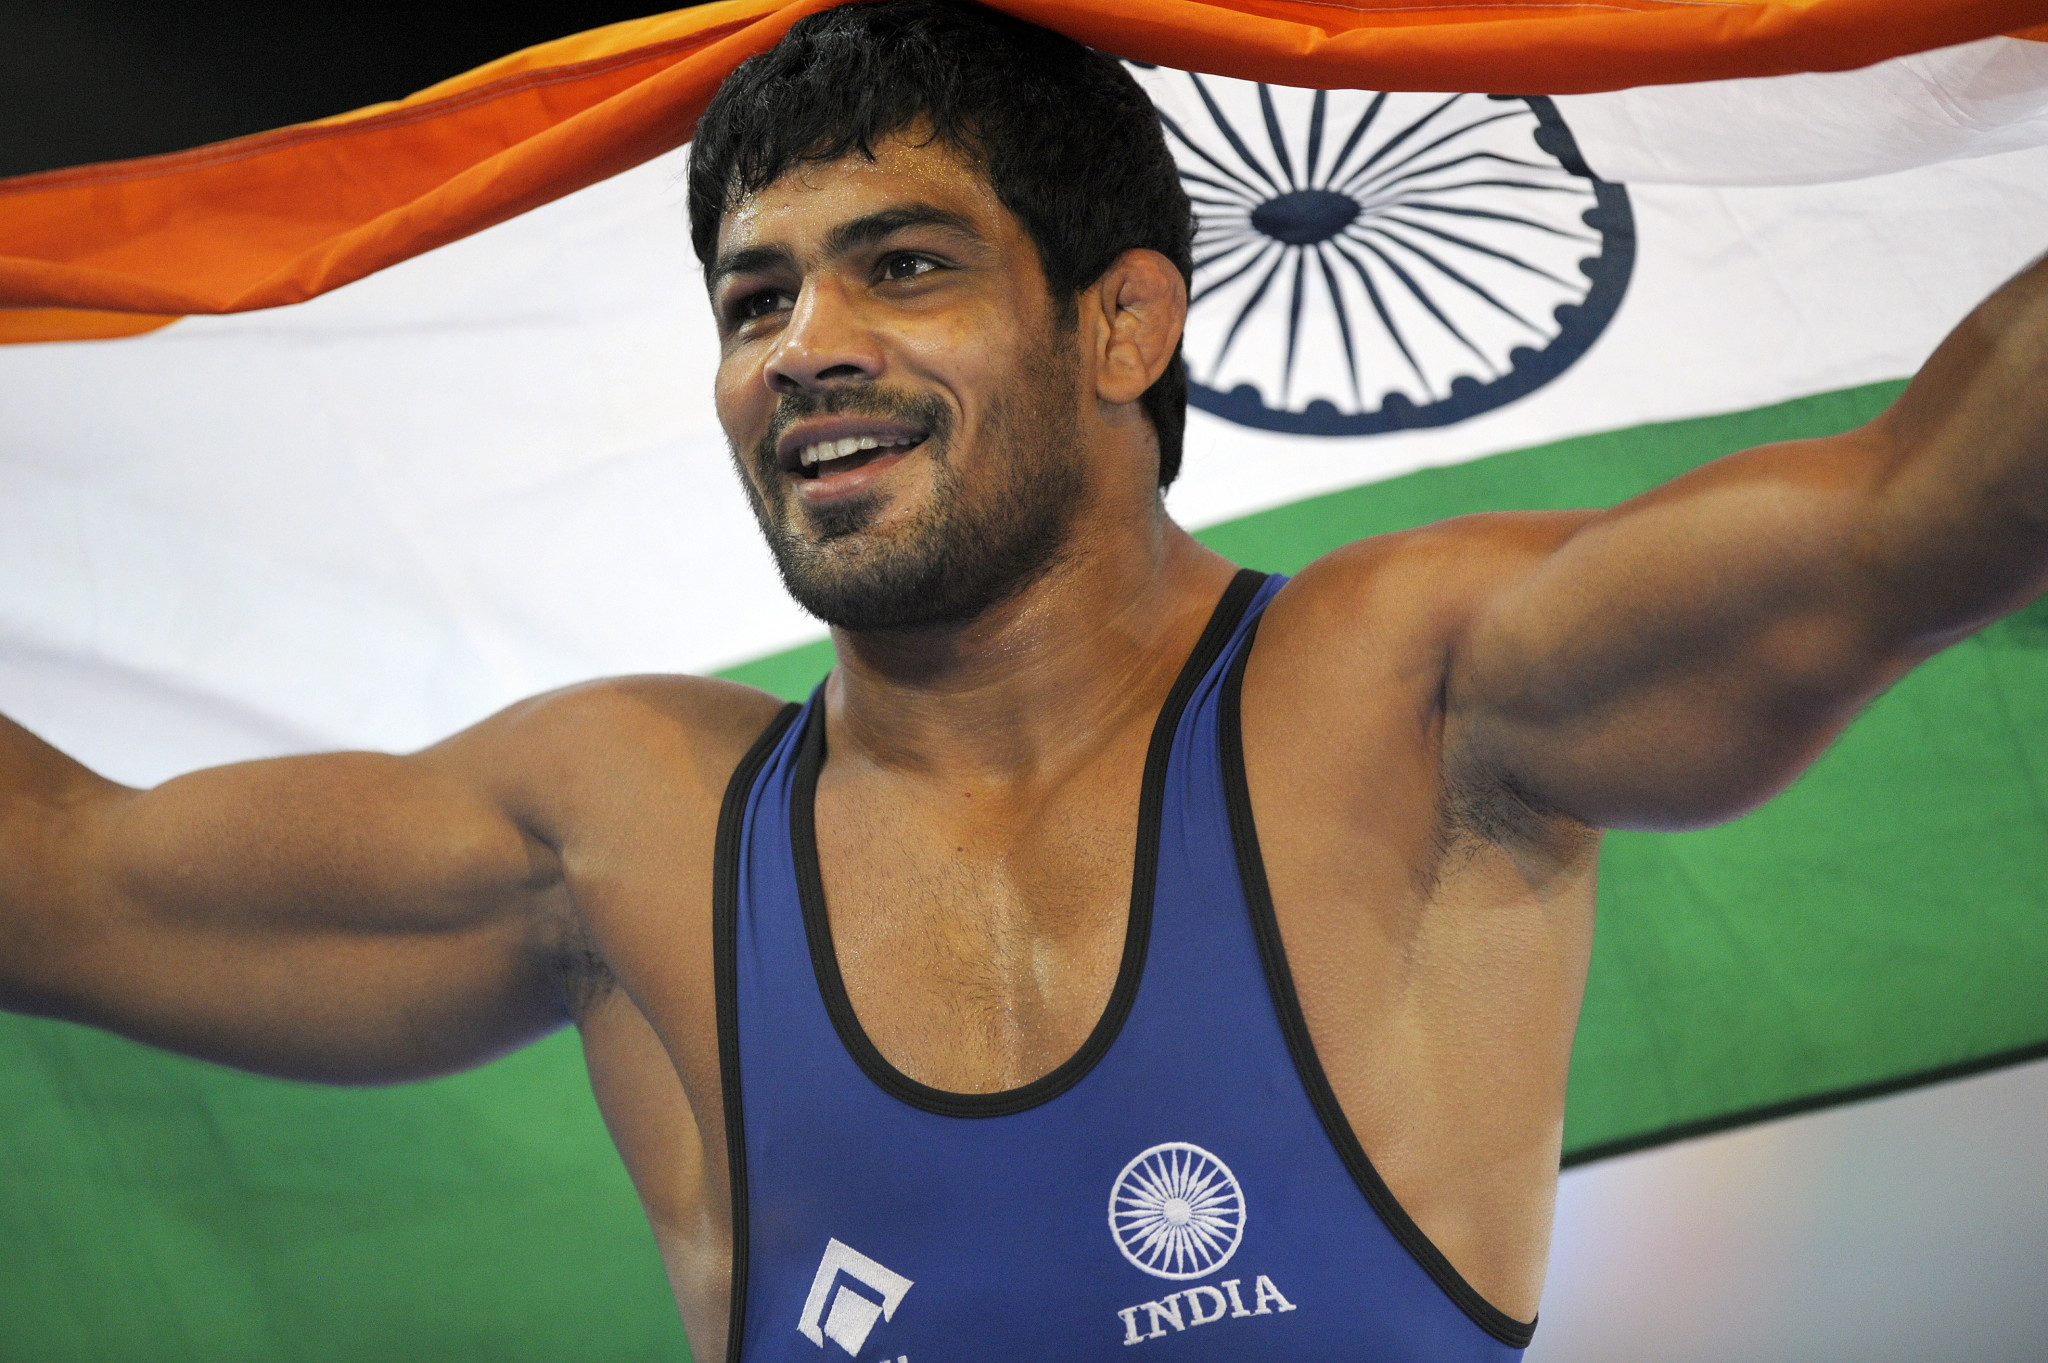 Indian wrestling veterans Kumar and Dutt set to make comeback for Gold Coast 2018